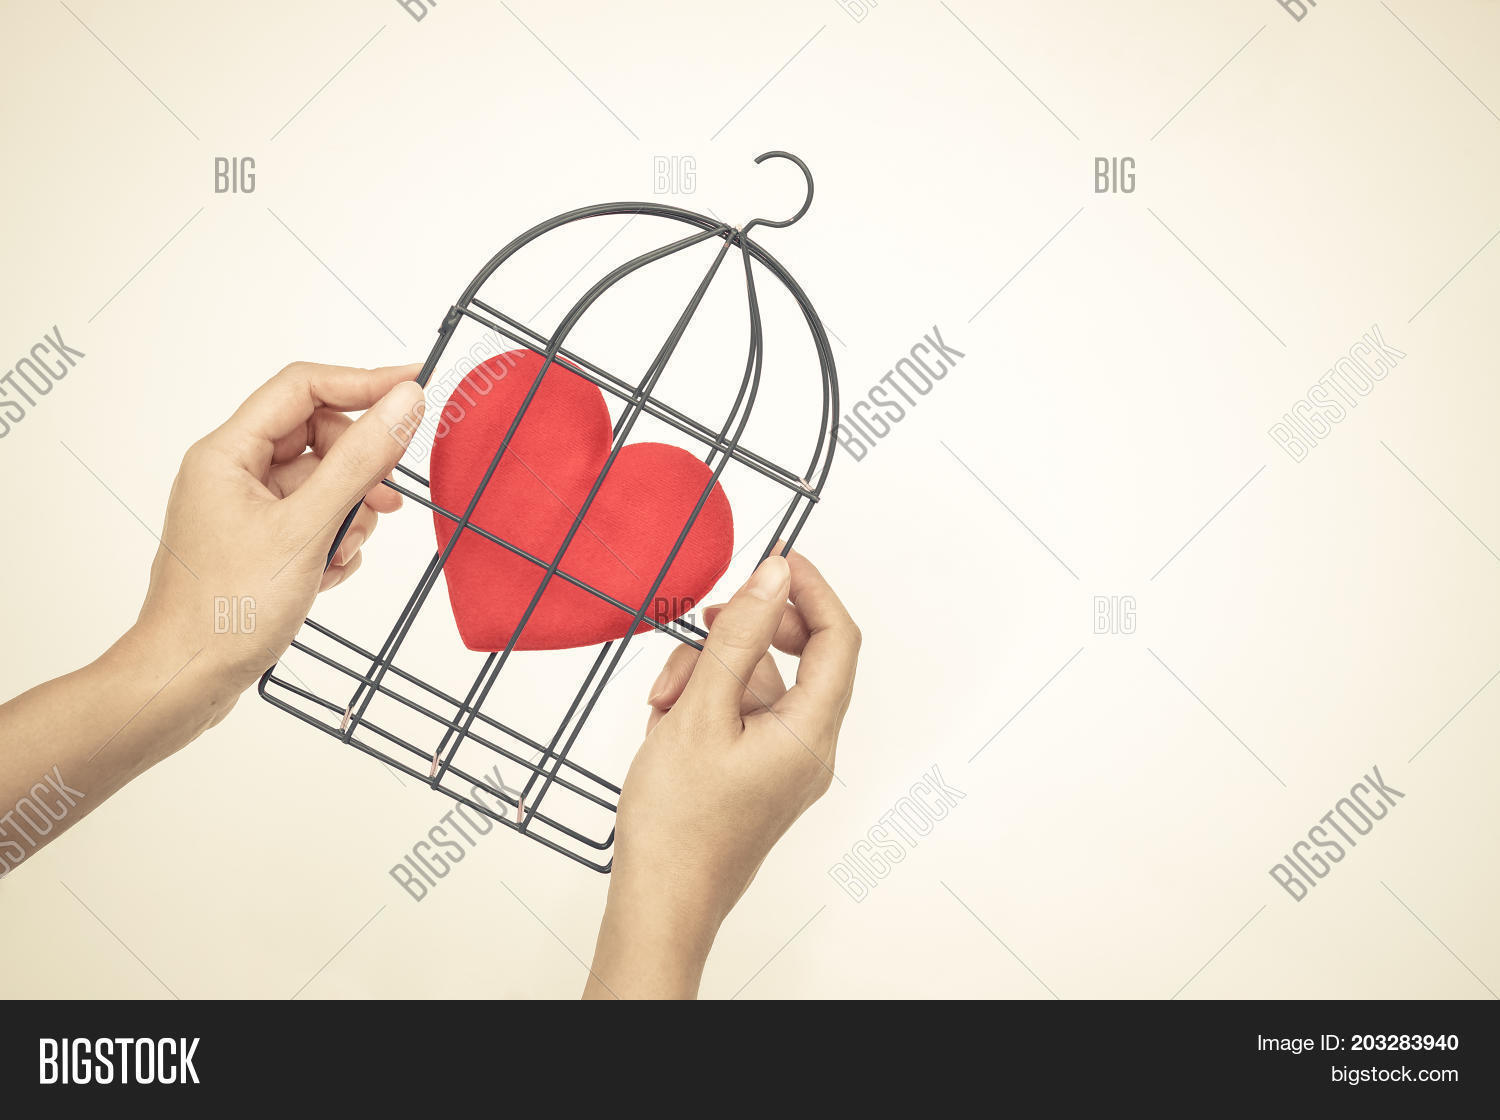 Hands Holding Bird Image Photo Free Trial Bigstock Heart Diagram A Cage With Red Inside Forbidden Love Concept